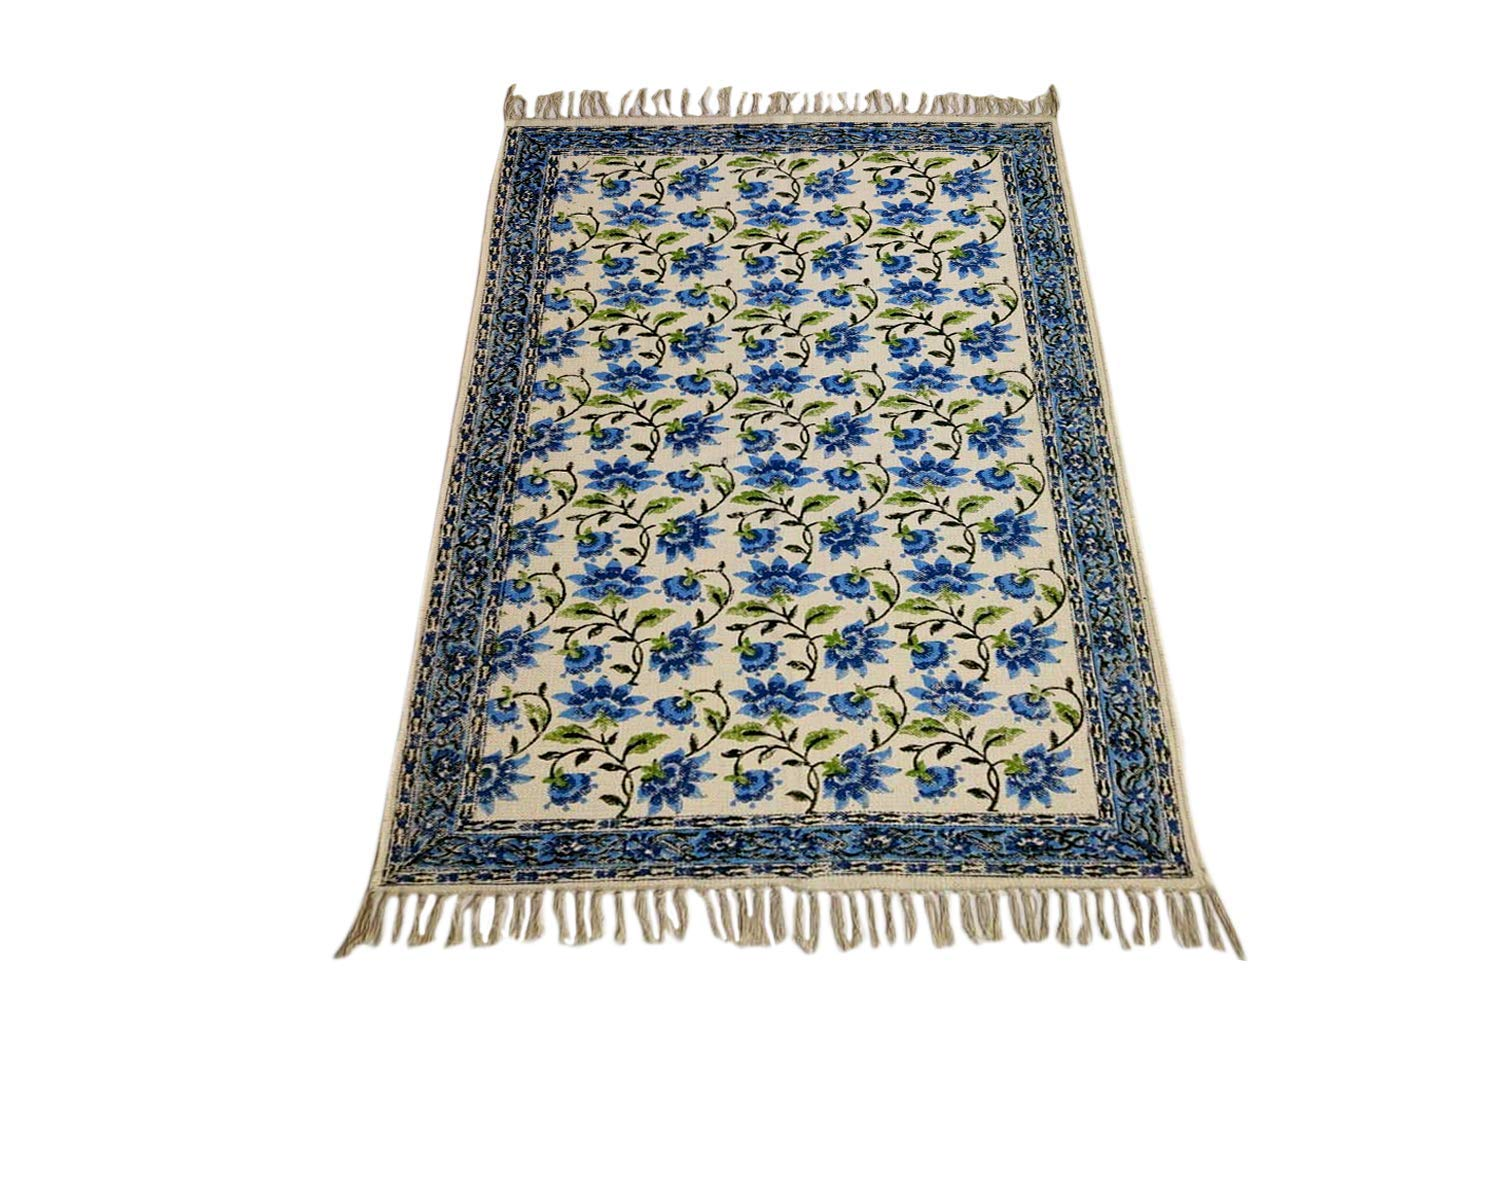 "Trance Home Linen Cotton Printed Dhurrie Rugs for Living Room | Carpet Rug Runner | Floor Mat for Bedroom Kitchen - Small 2 x 3 Feet (24""x36"")"